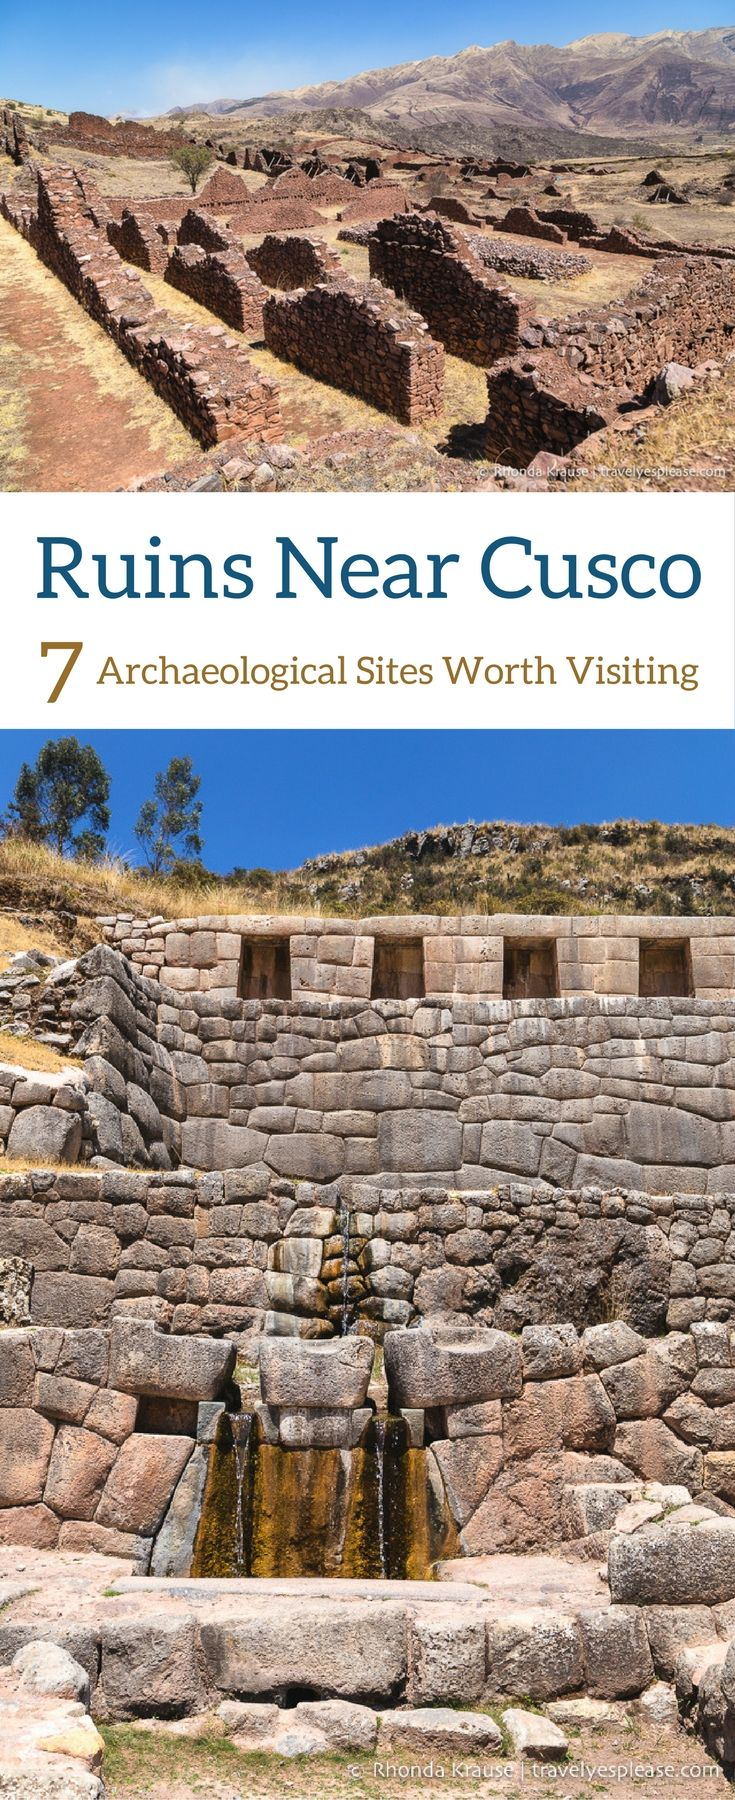 Ruins Near Cusco, Peru- 7 Archaeological Sites Worth Visiting (Blog Post, travelyesplease.com) | #Peru #Cusco #southamerica #archaeology #ruins